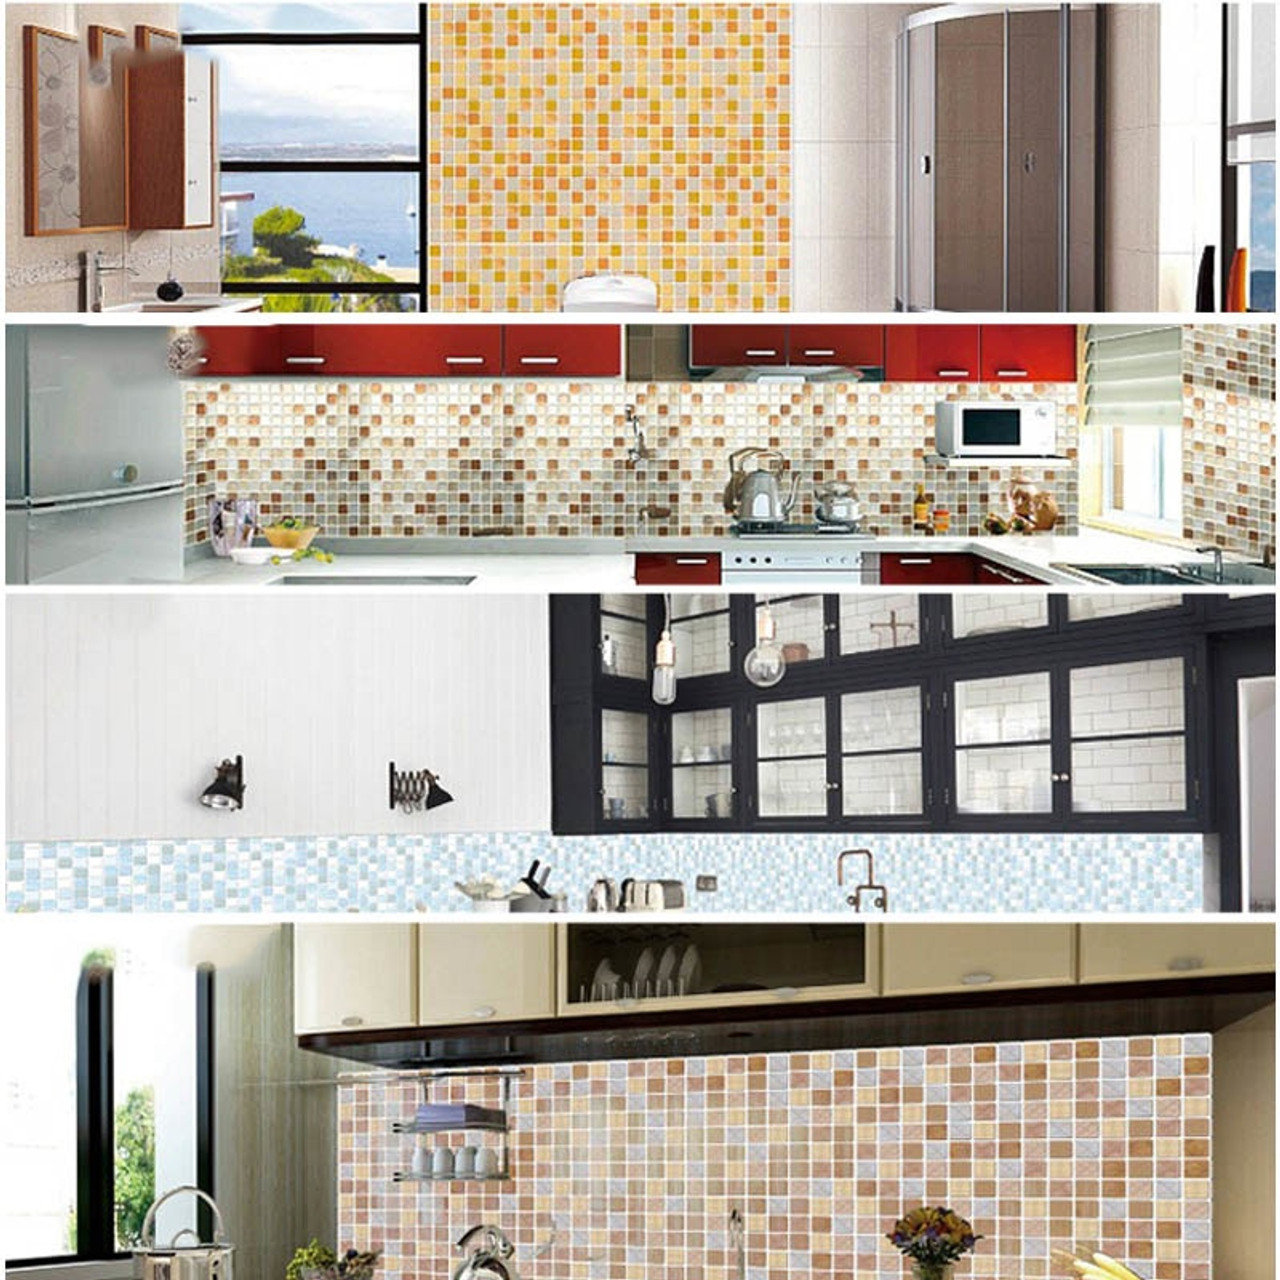 Home Decor 3d Wall Sticker Self Adhesive Tile Wall Sticker